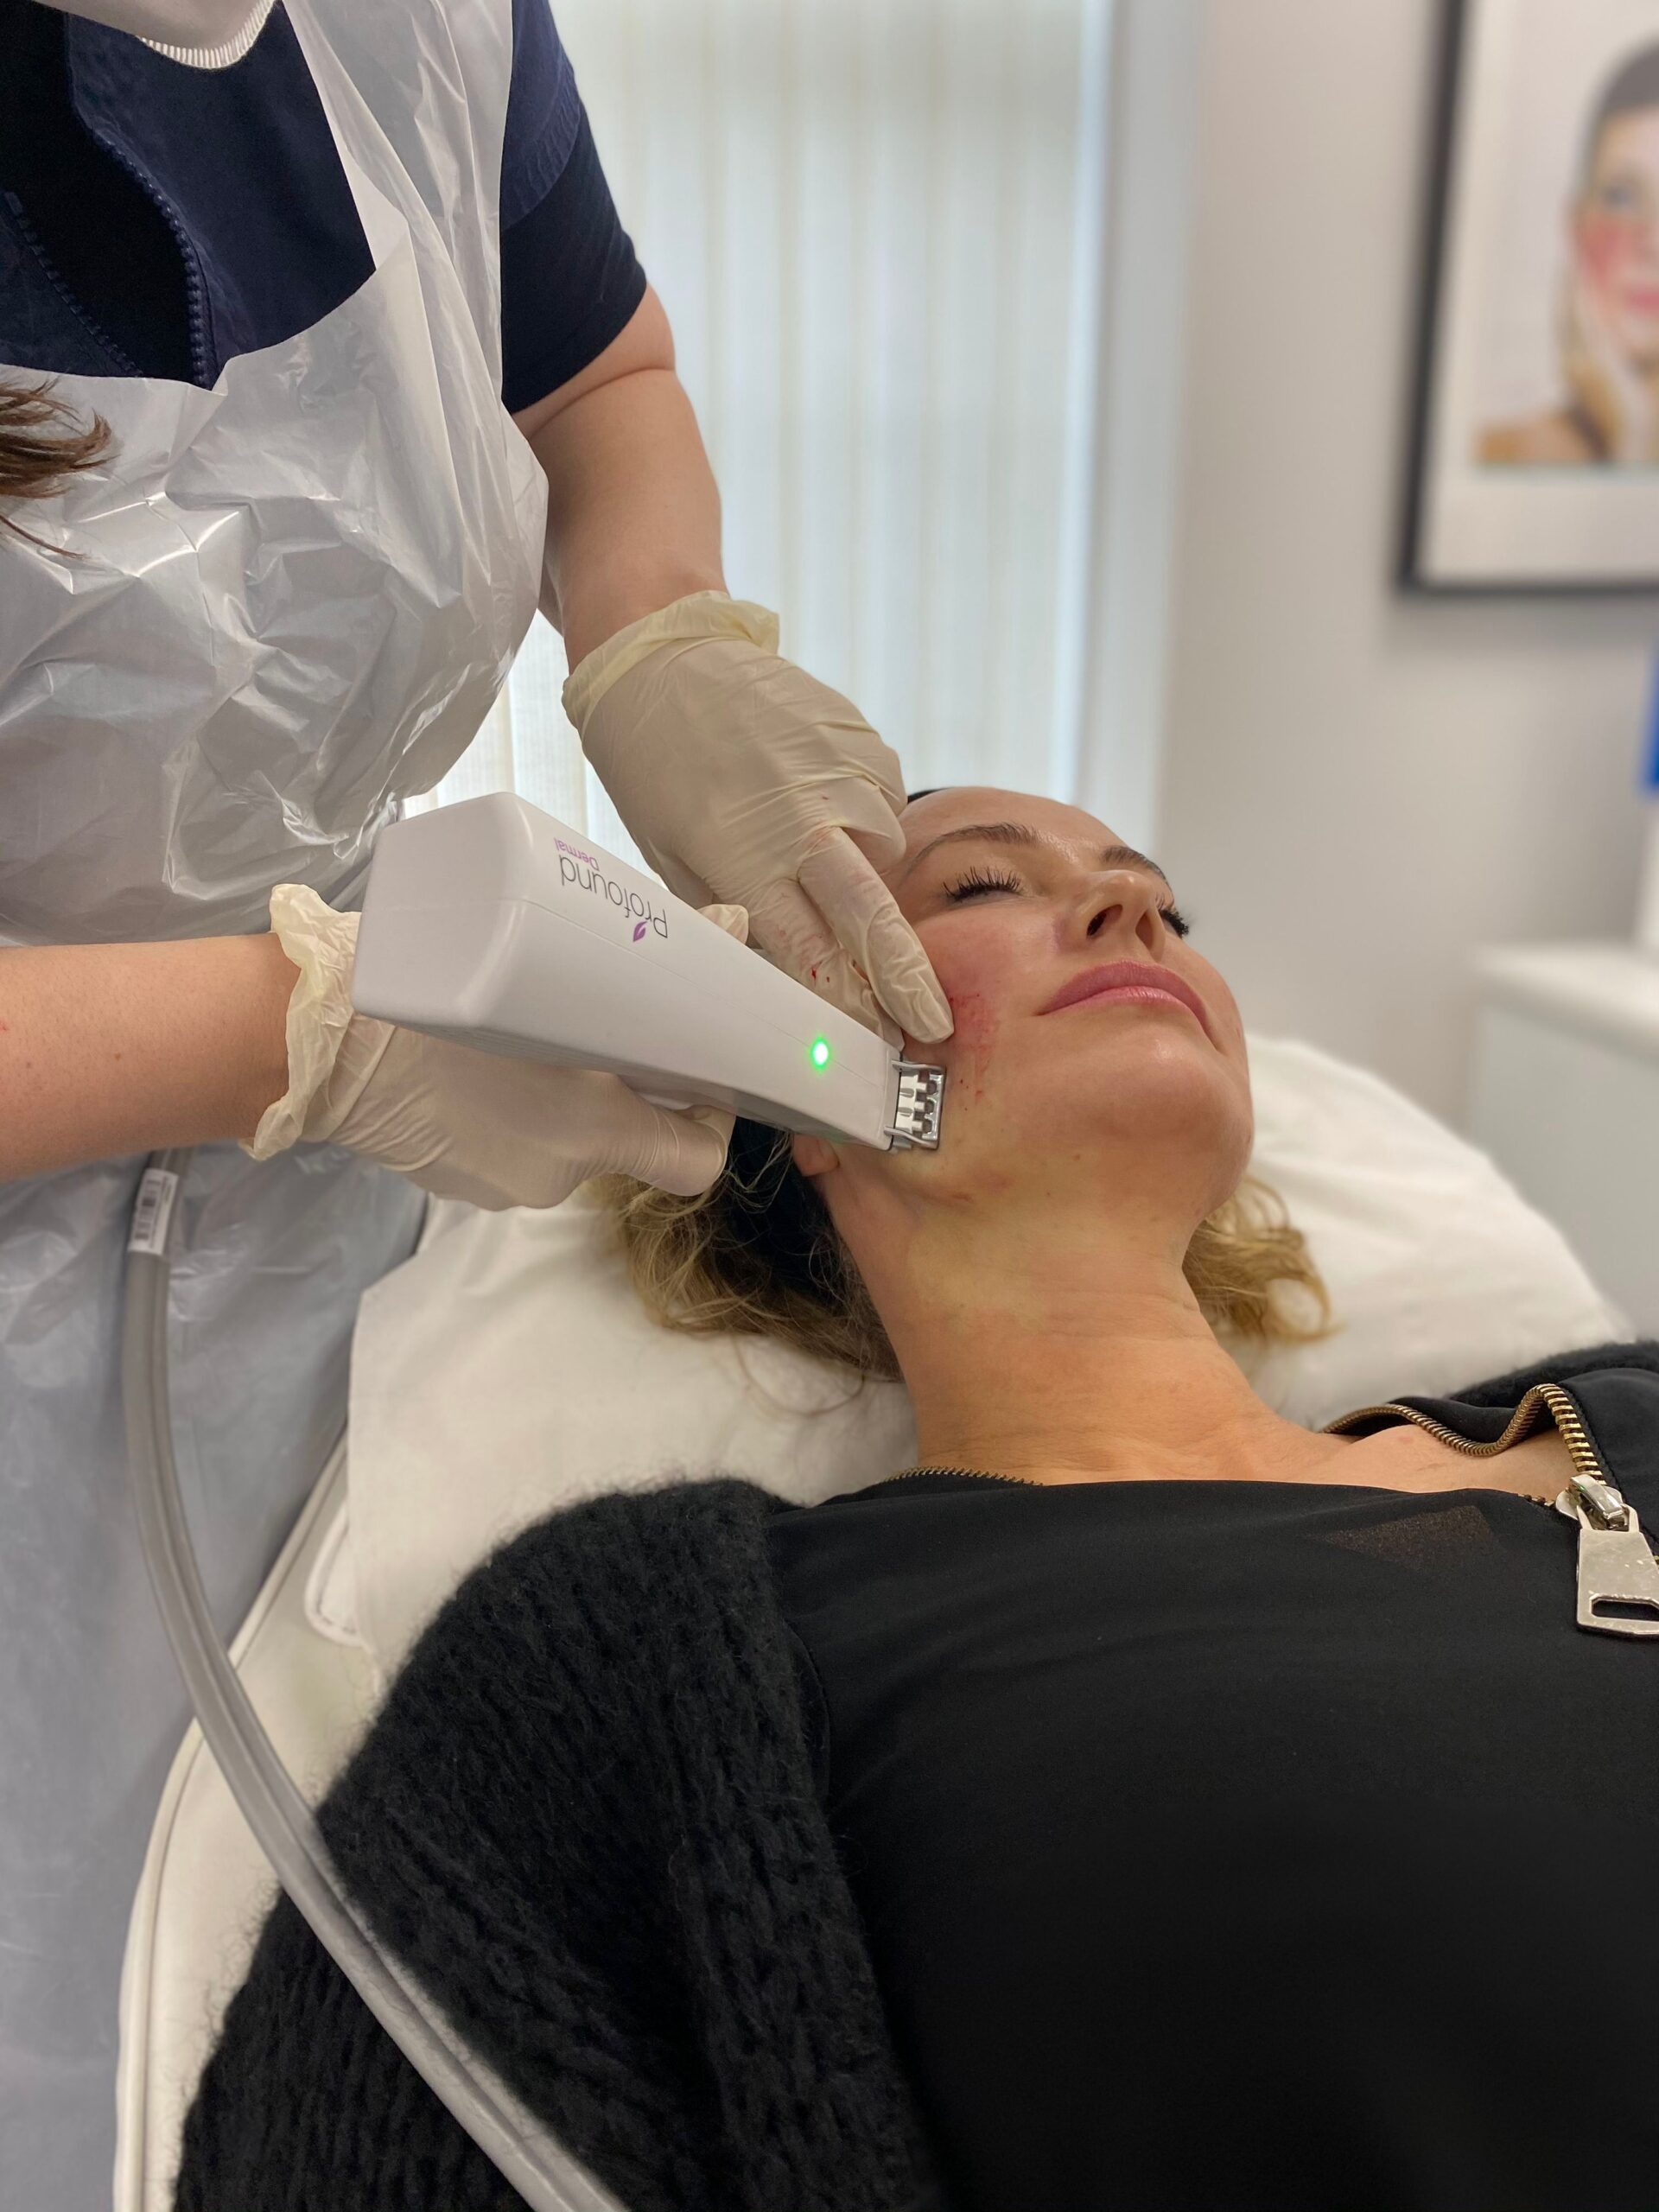 Non-surgical Skin Tightening vs. Fillers – Which is right for you?